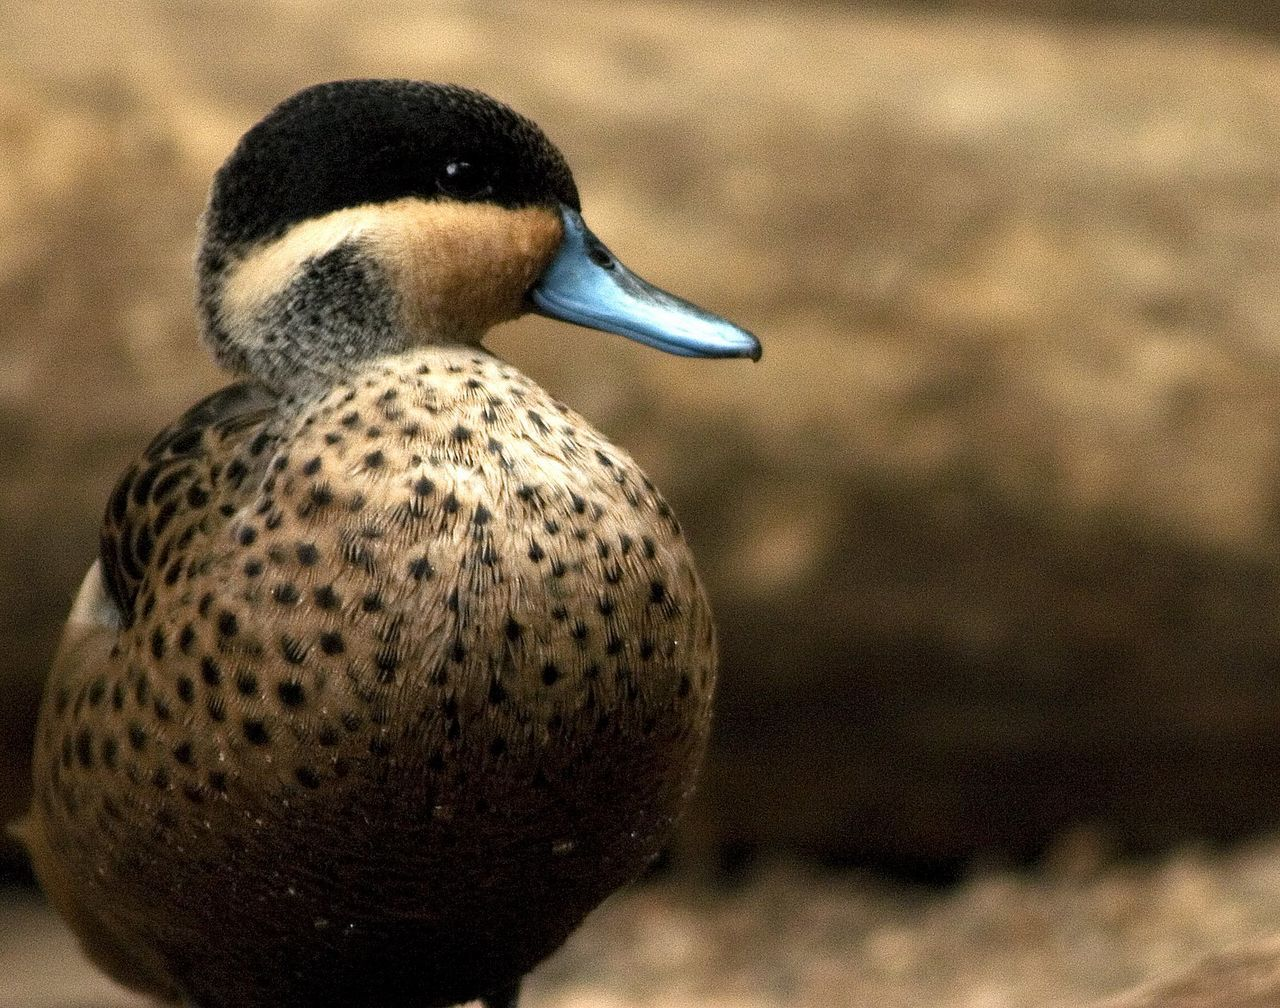 animals in the wild, one animal, animal themes, bird, focus on foreground, animal wildlife, duck, day, no people, close-up, outdoors, beak, nature